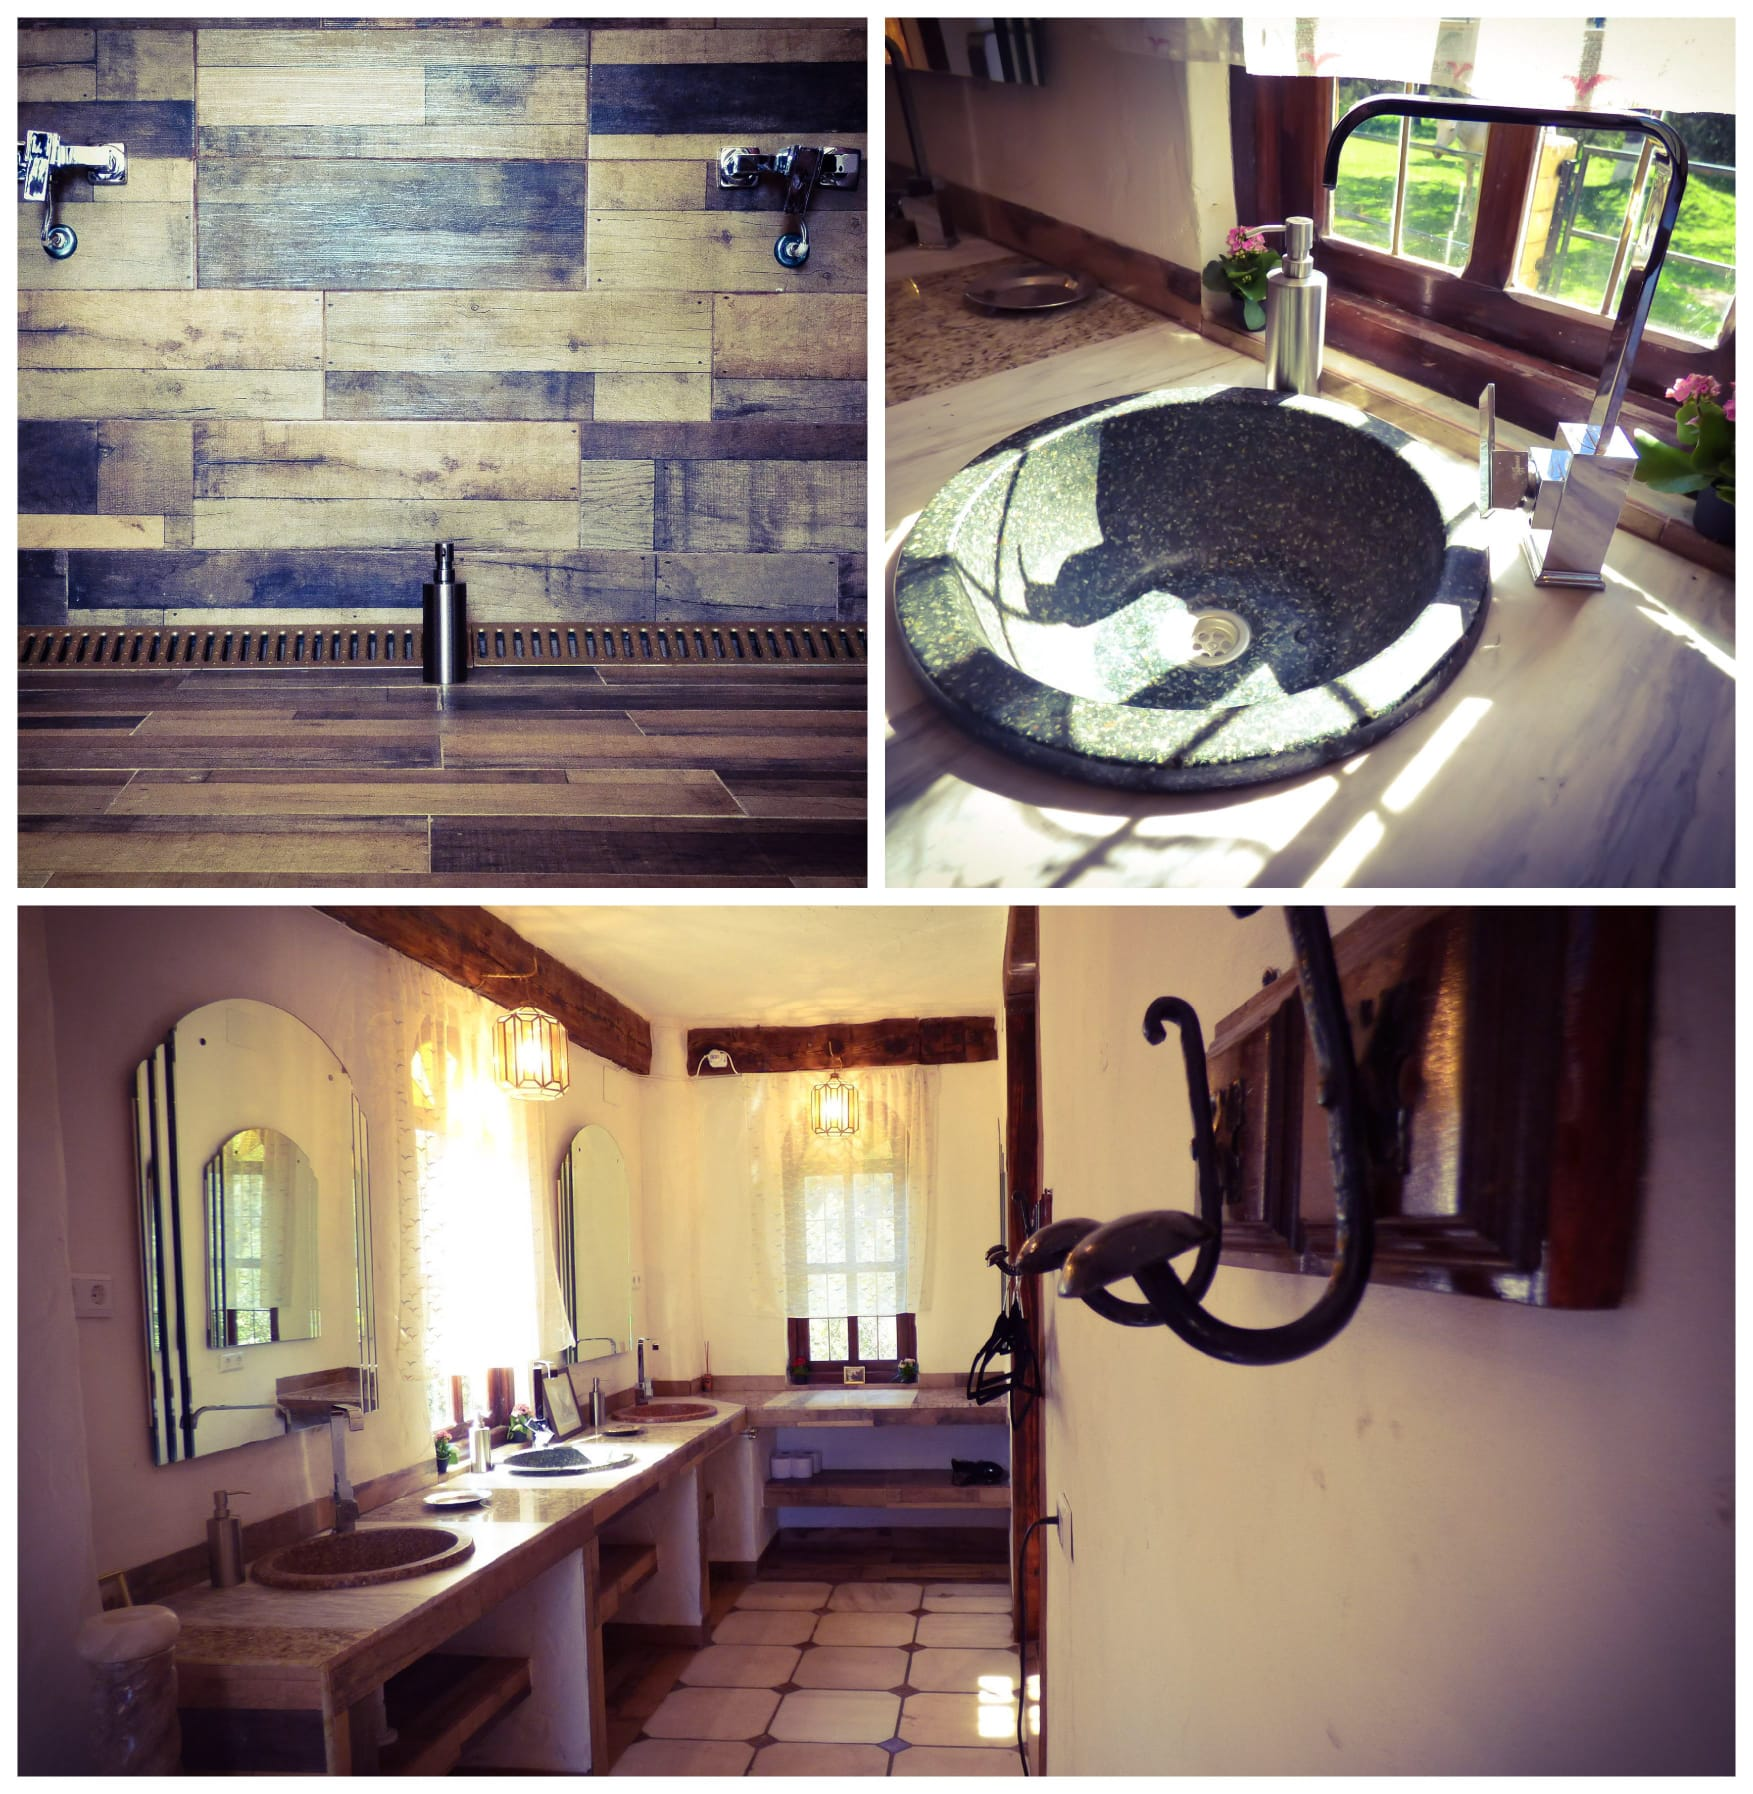 Rustic design bathroom Andalusia house.